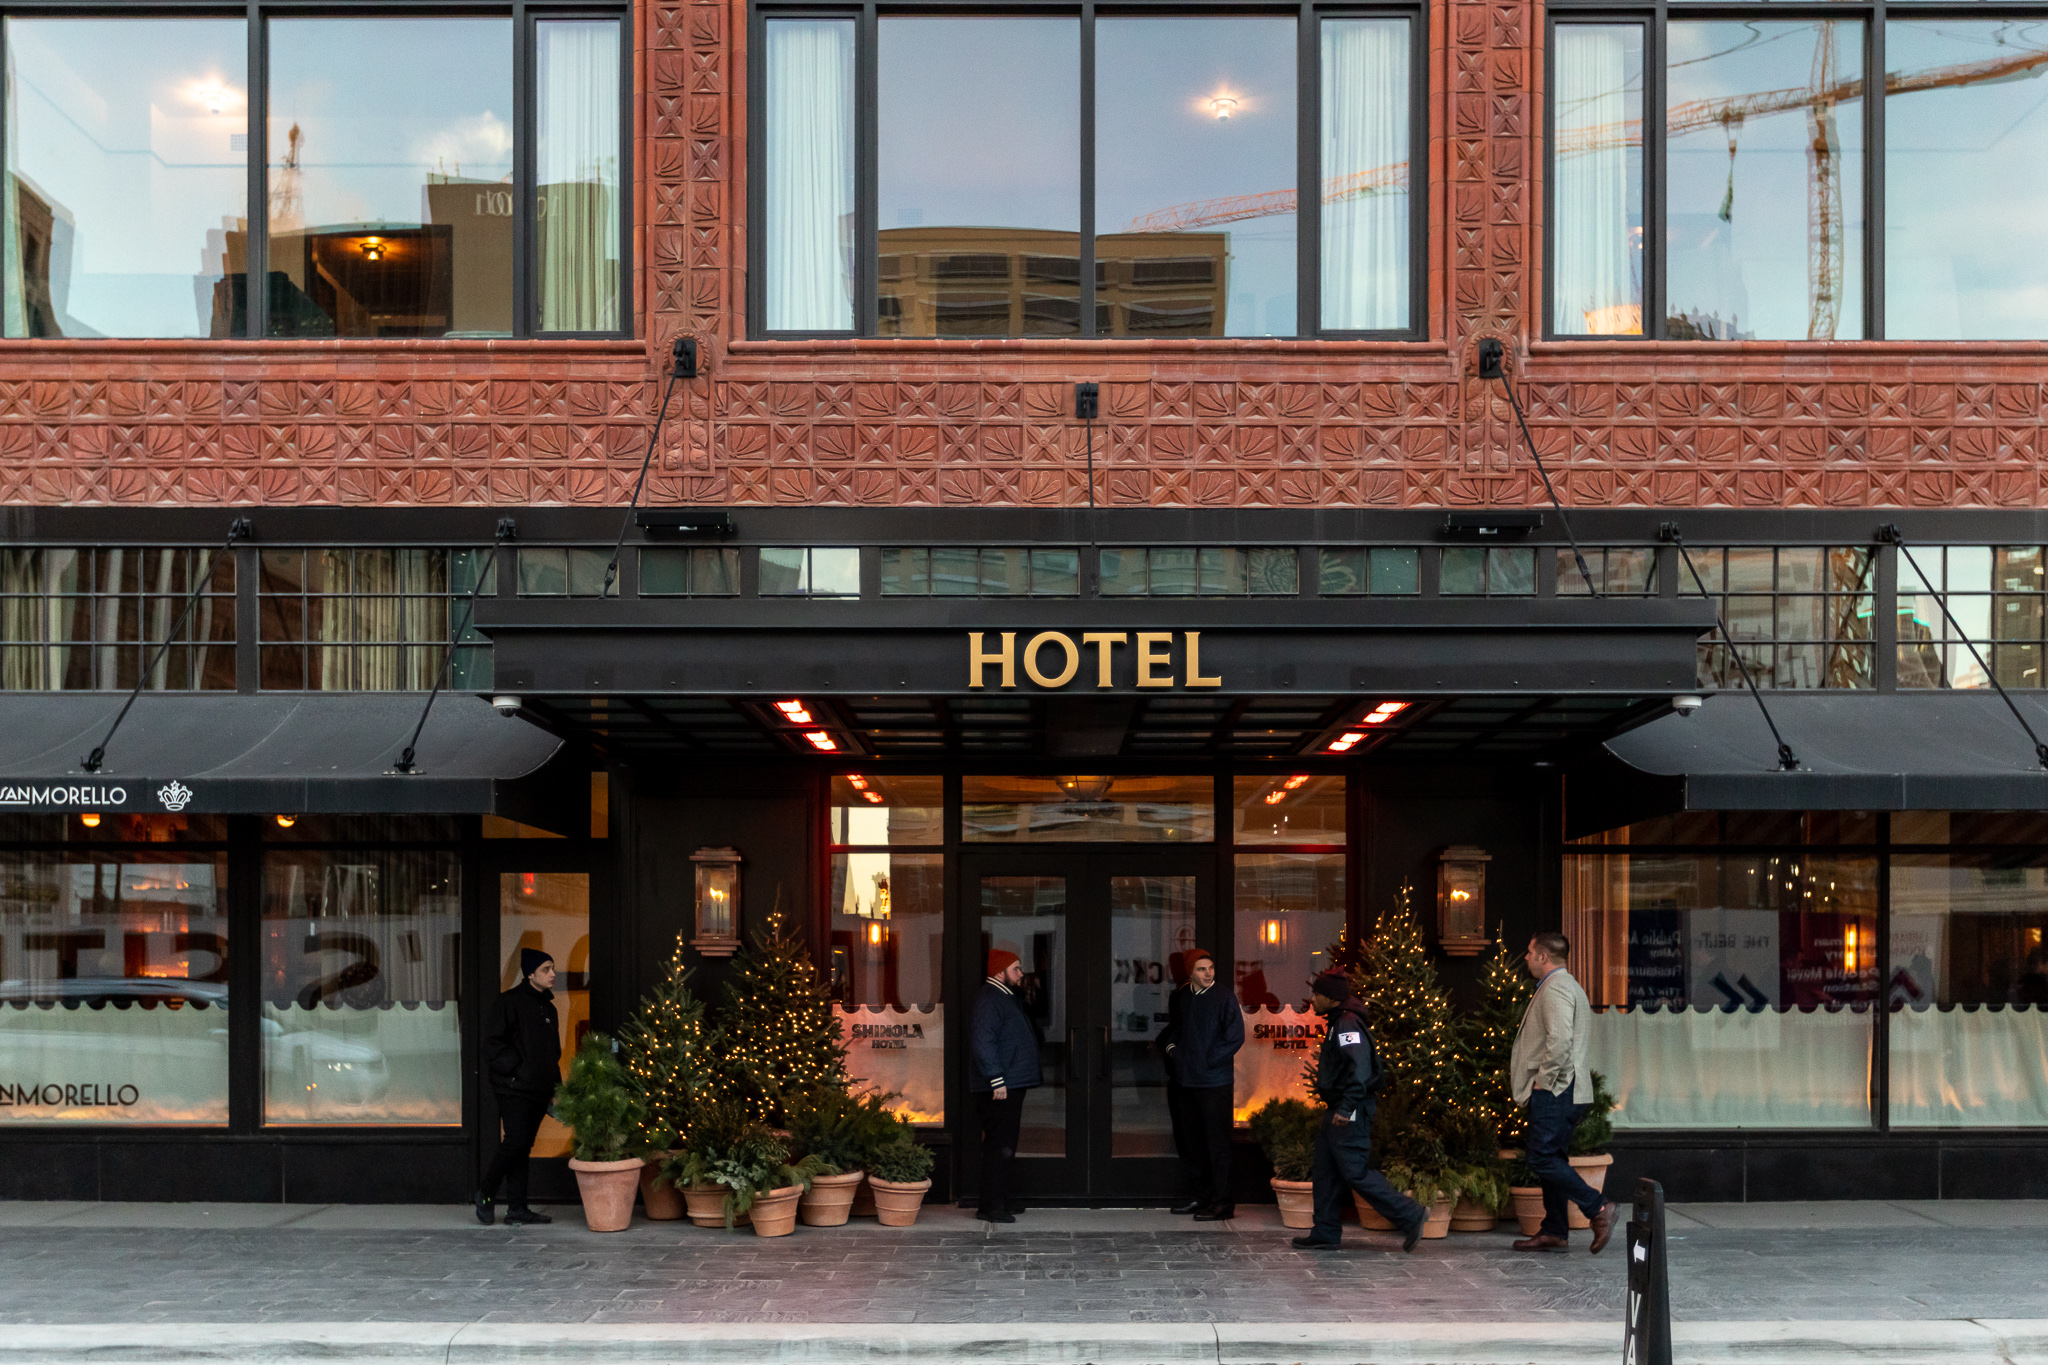 The exterior of the Shinola Hotel in Detroit. There is a black awning over the entrance with the word Hotel on it. The building has a red brick facade.